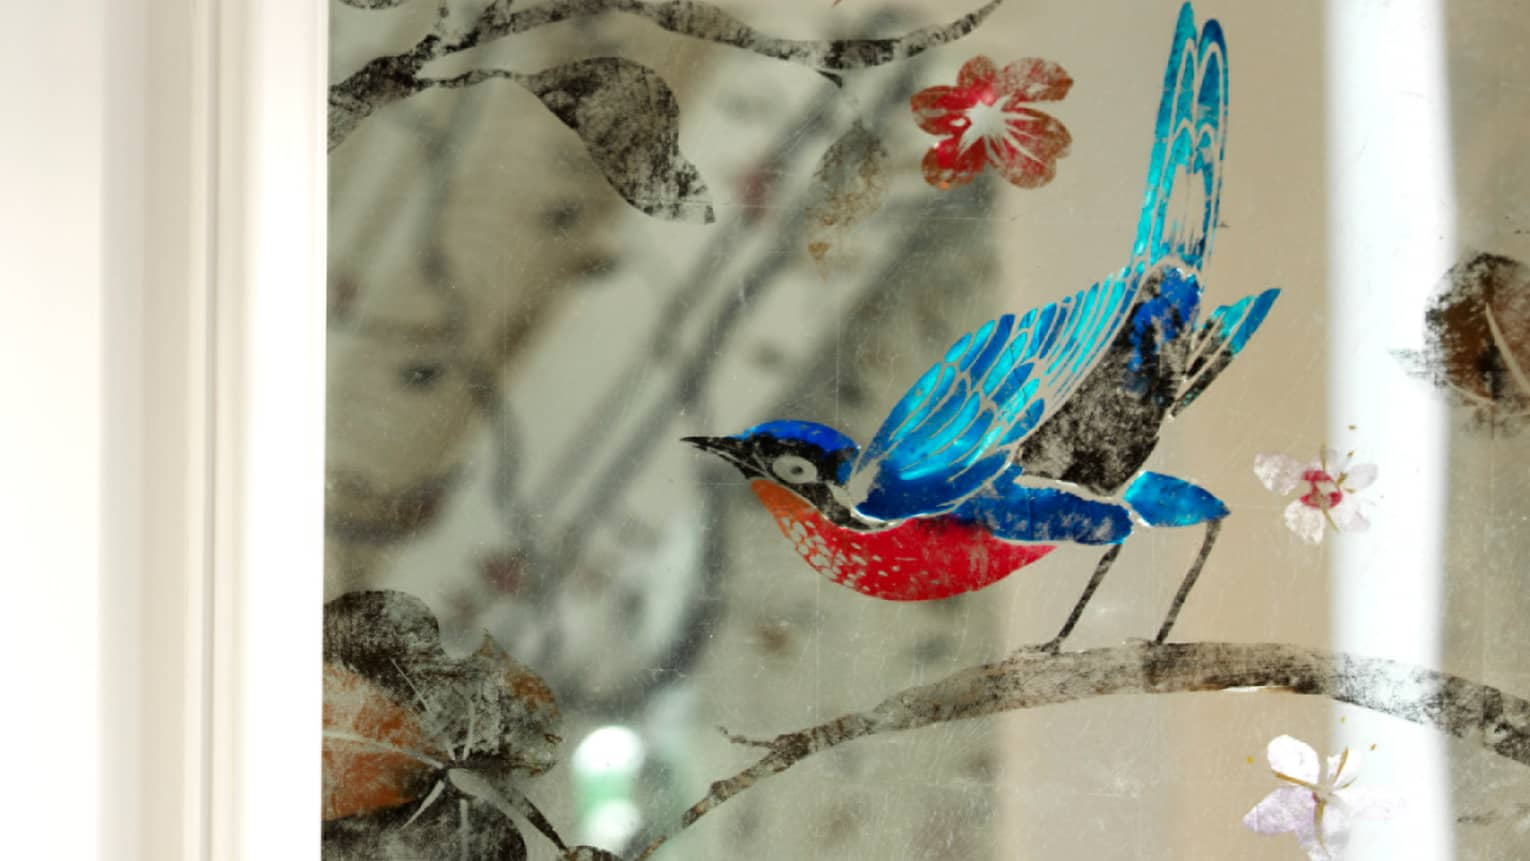 Coulourful painting of blue bird on branch, flowers on glass